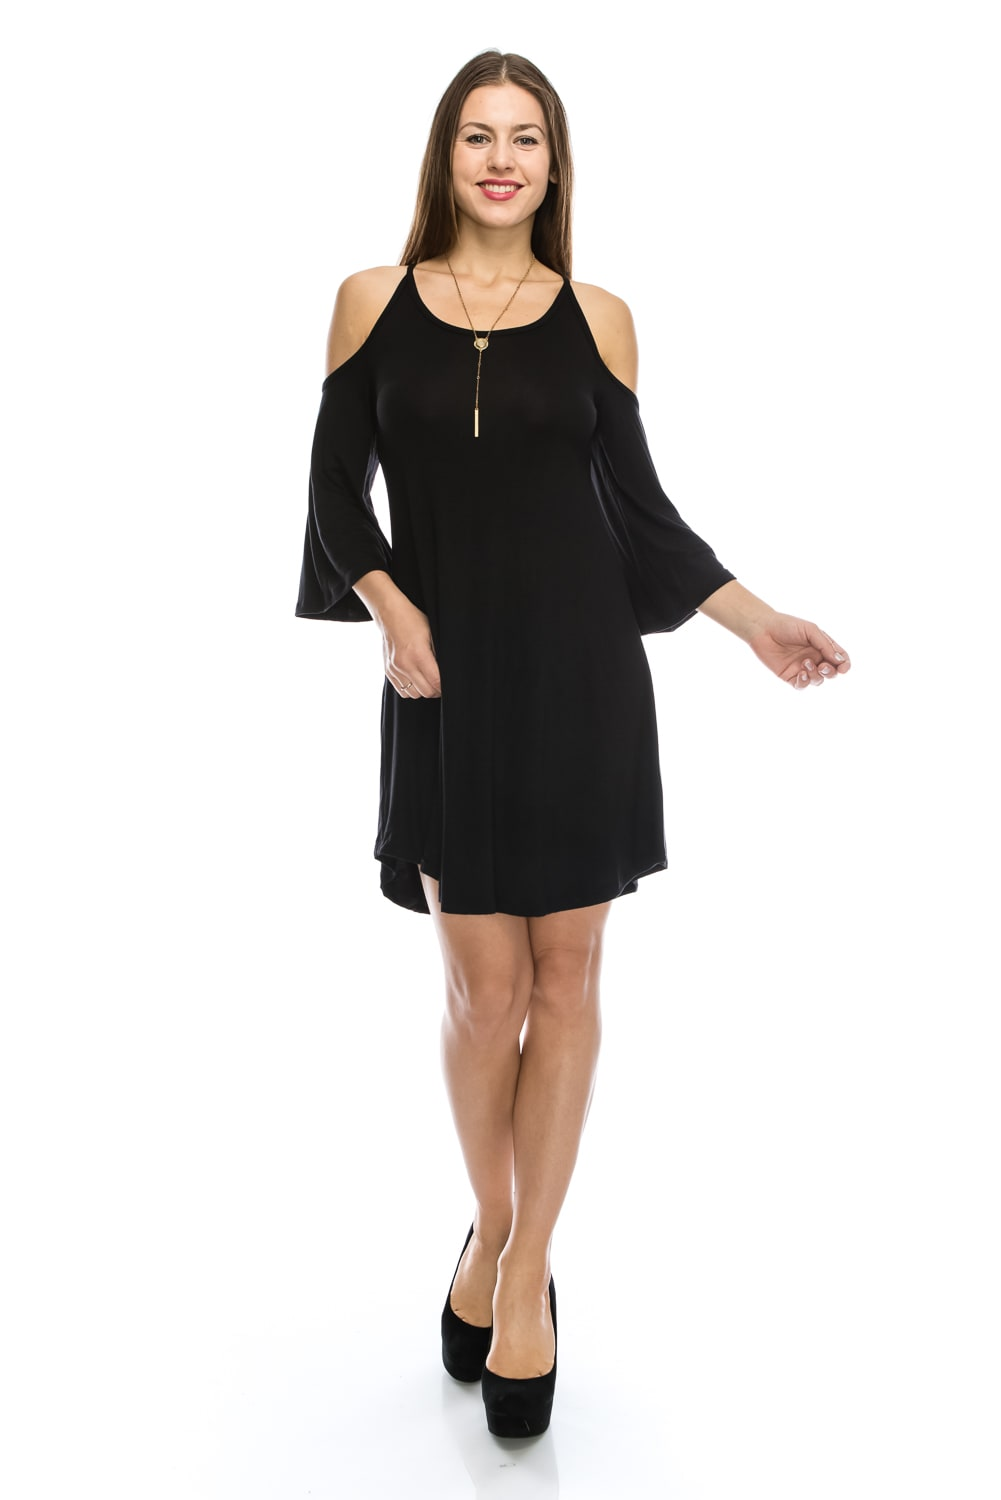 Stylish Open Shoulder Tunic Swing Designer Shift Dress w/ Trendy Bell Sleeves - MADE IN USA -  All Sizes + Colors